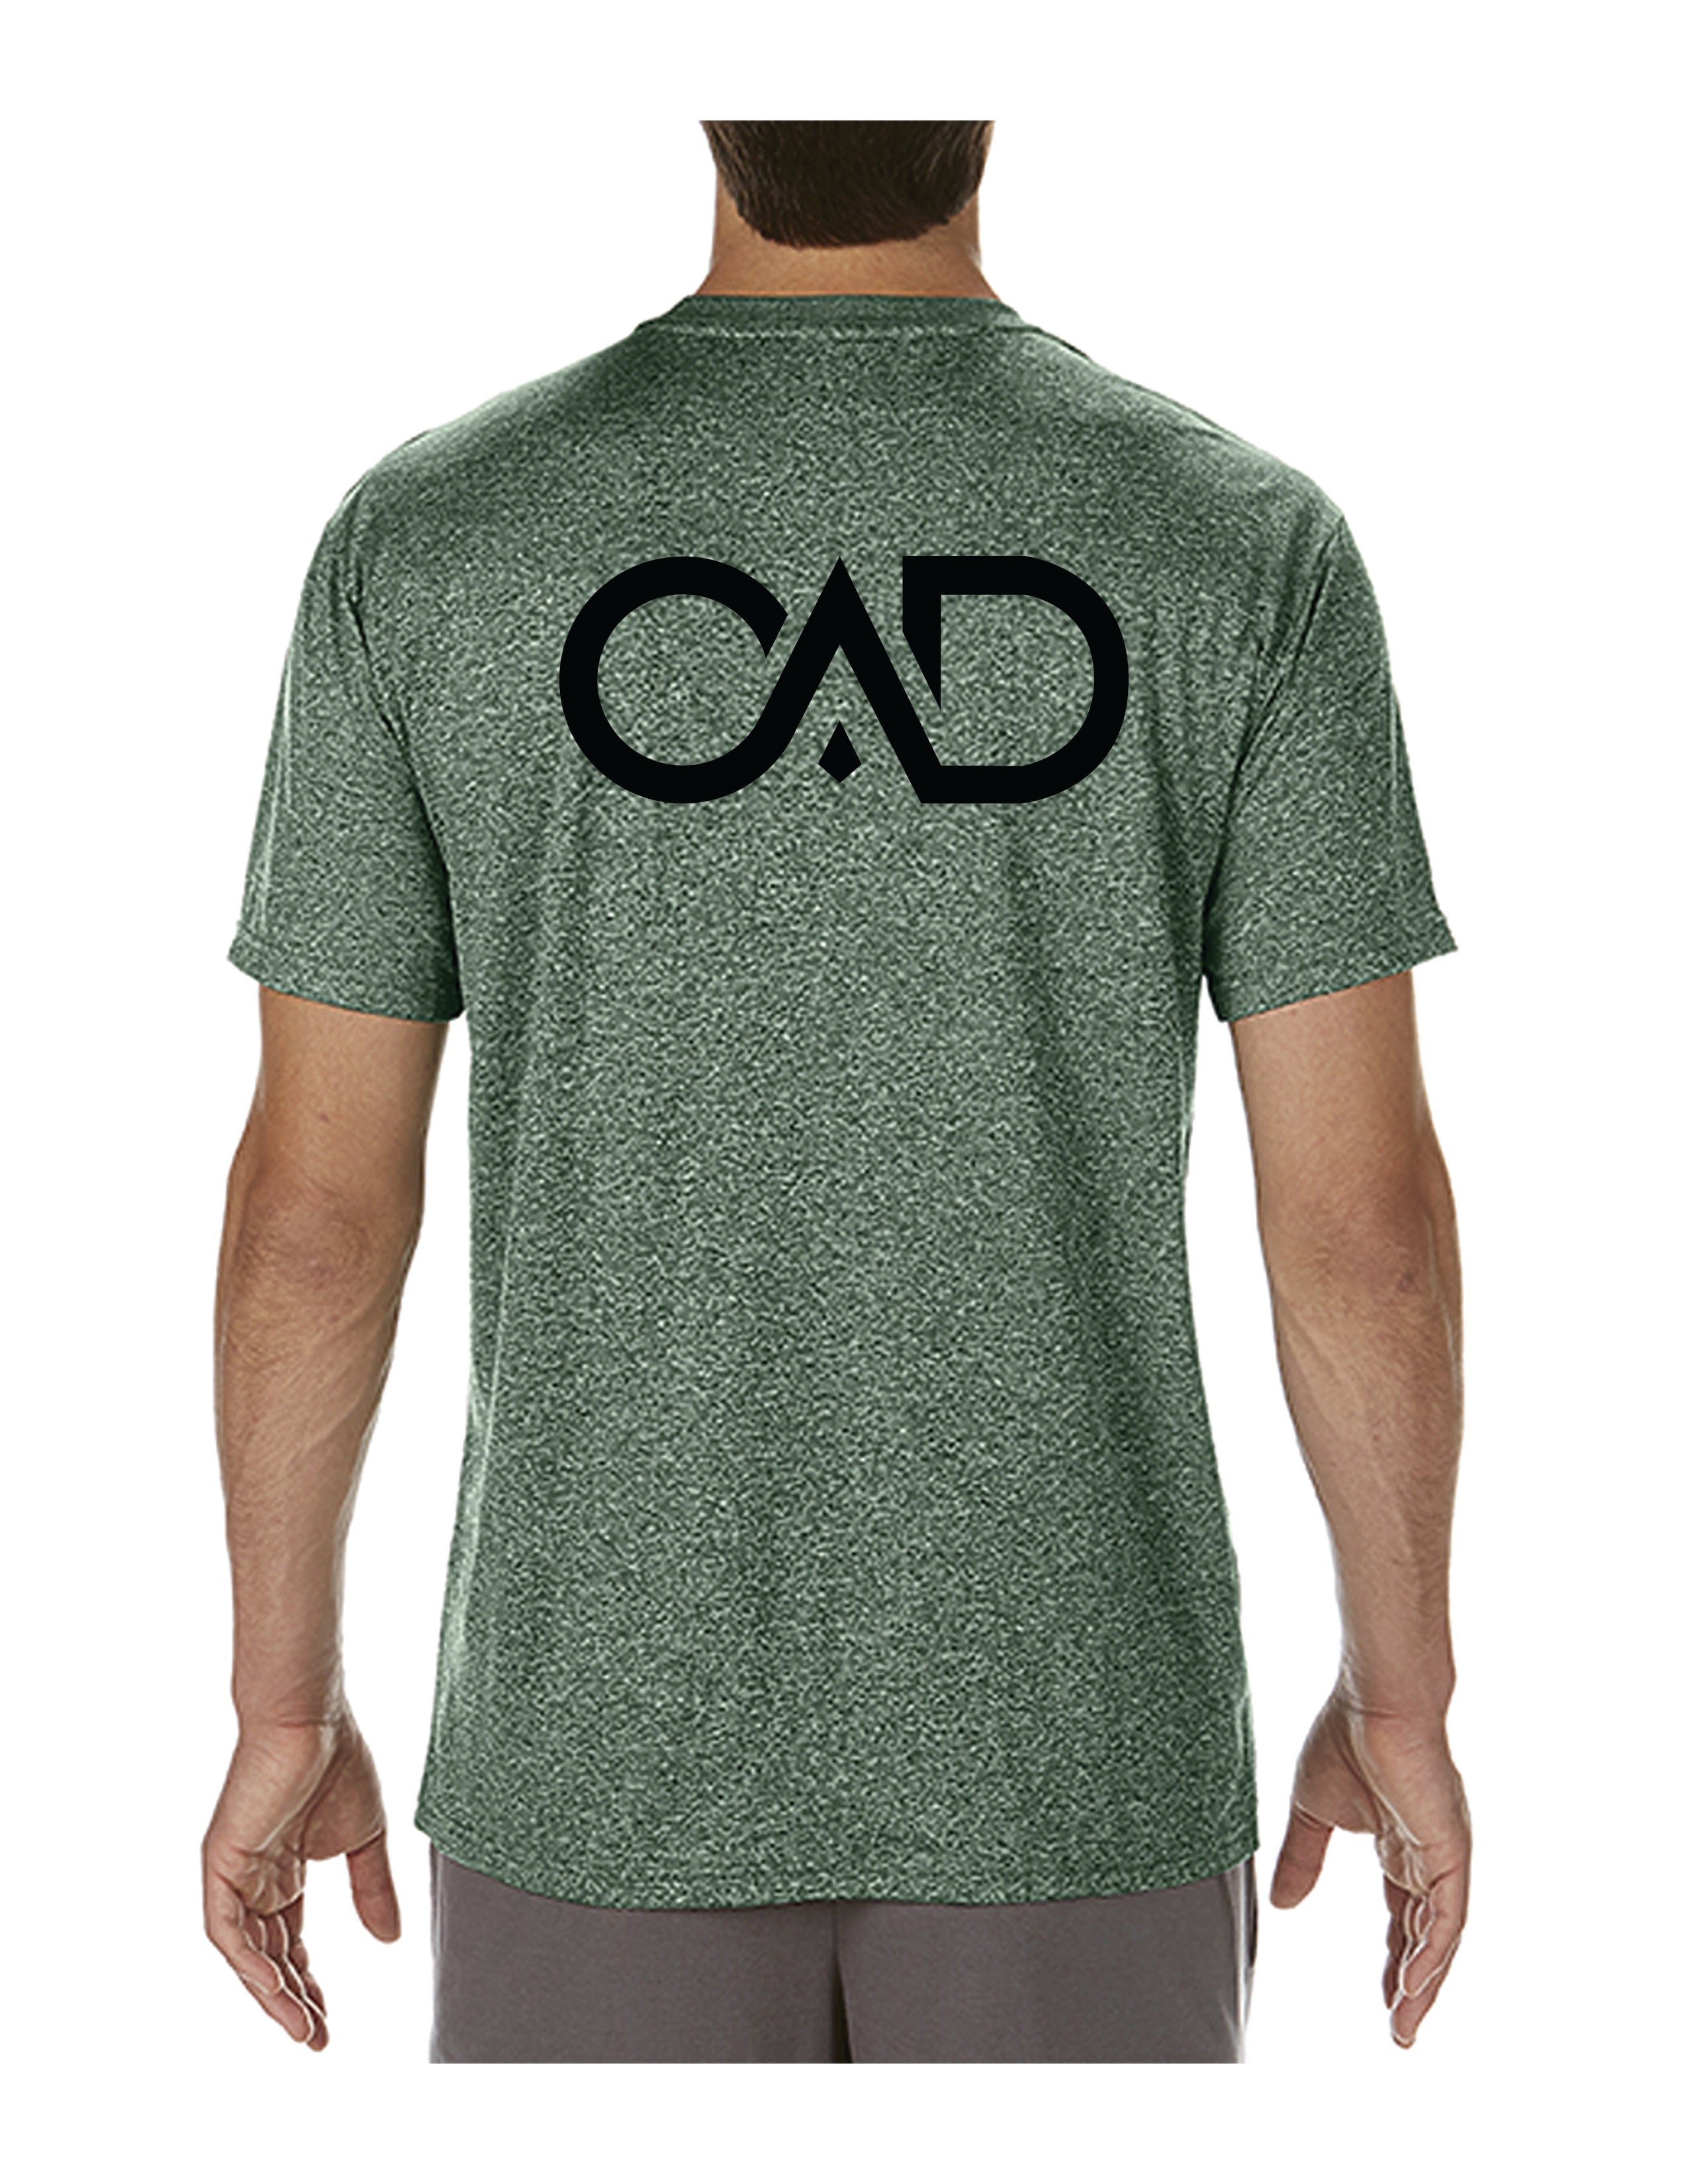 OAD Performance T-shirts - OAD : OUTSIDE.ALL.DAY